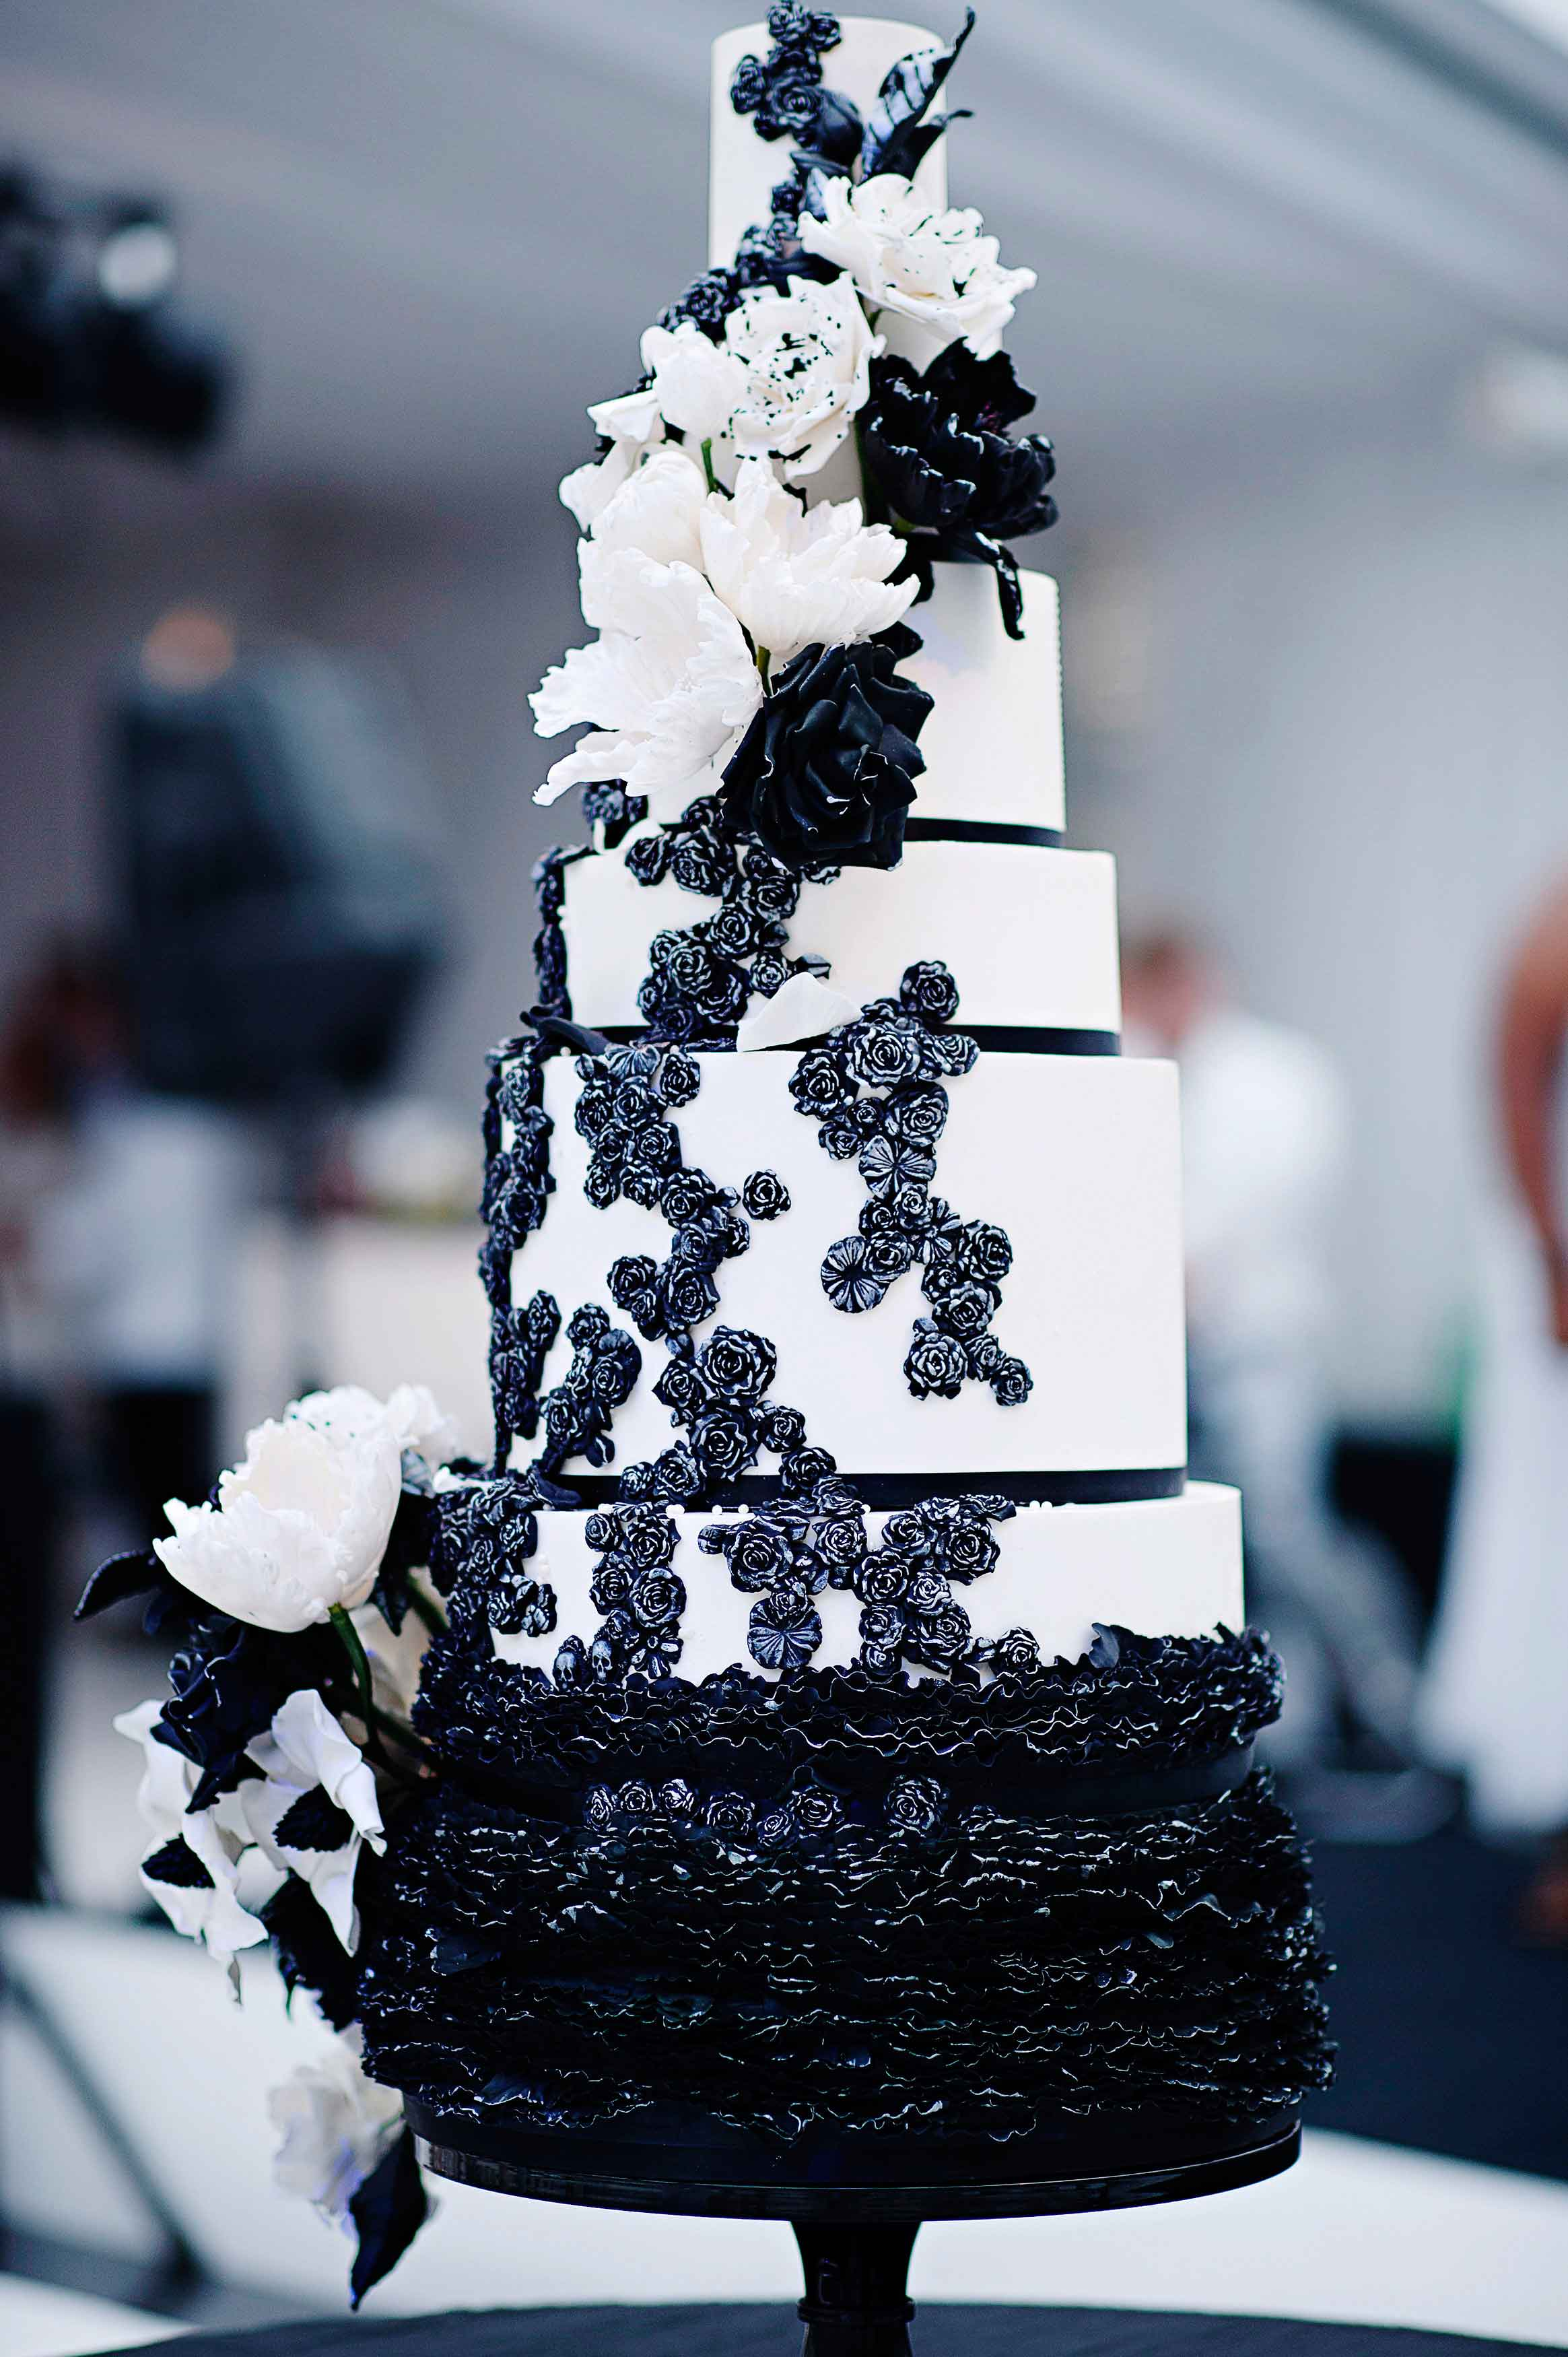 Black and white wedding cake for contemporary modern wedding